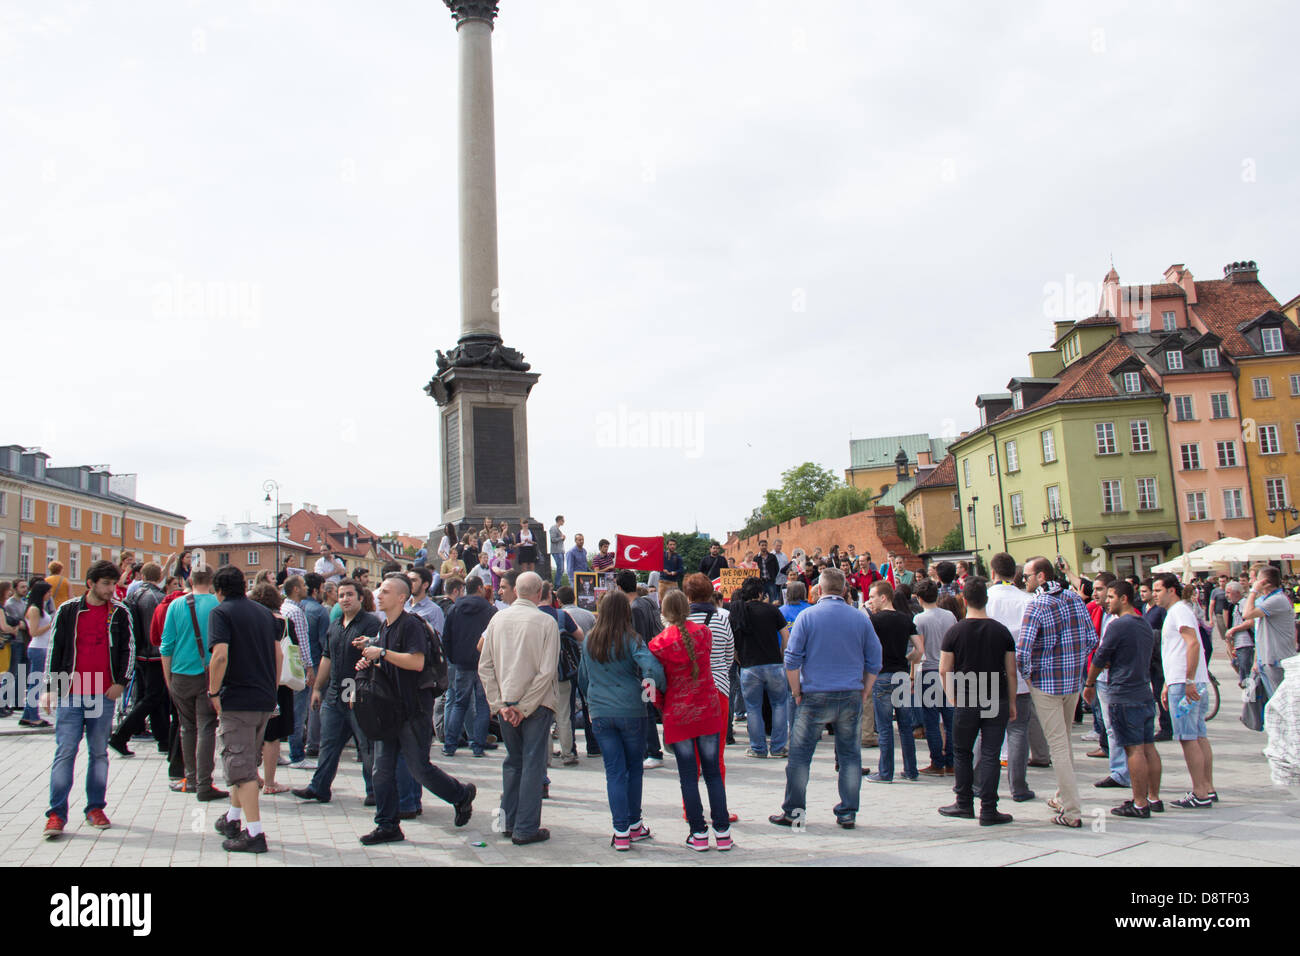 Warsaw, Poland, 2nd June, 2013. Demonstration of Turkish citizens against the policies of the Turkish government. - Stock Image